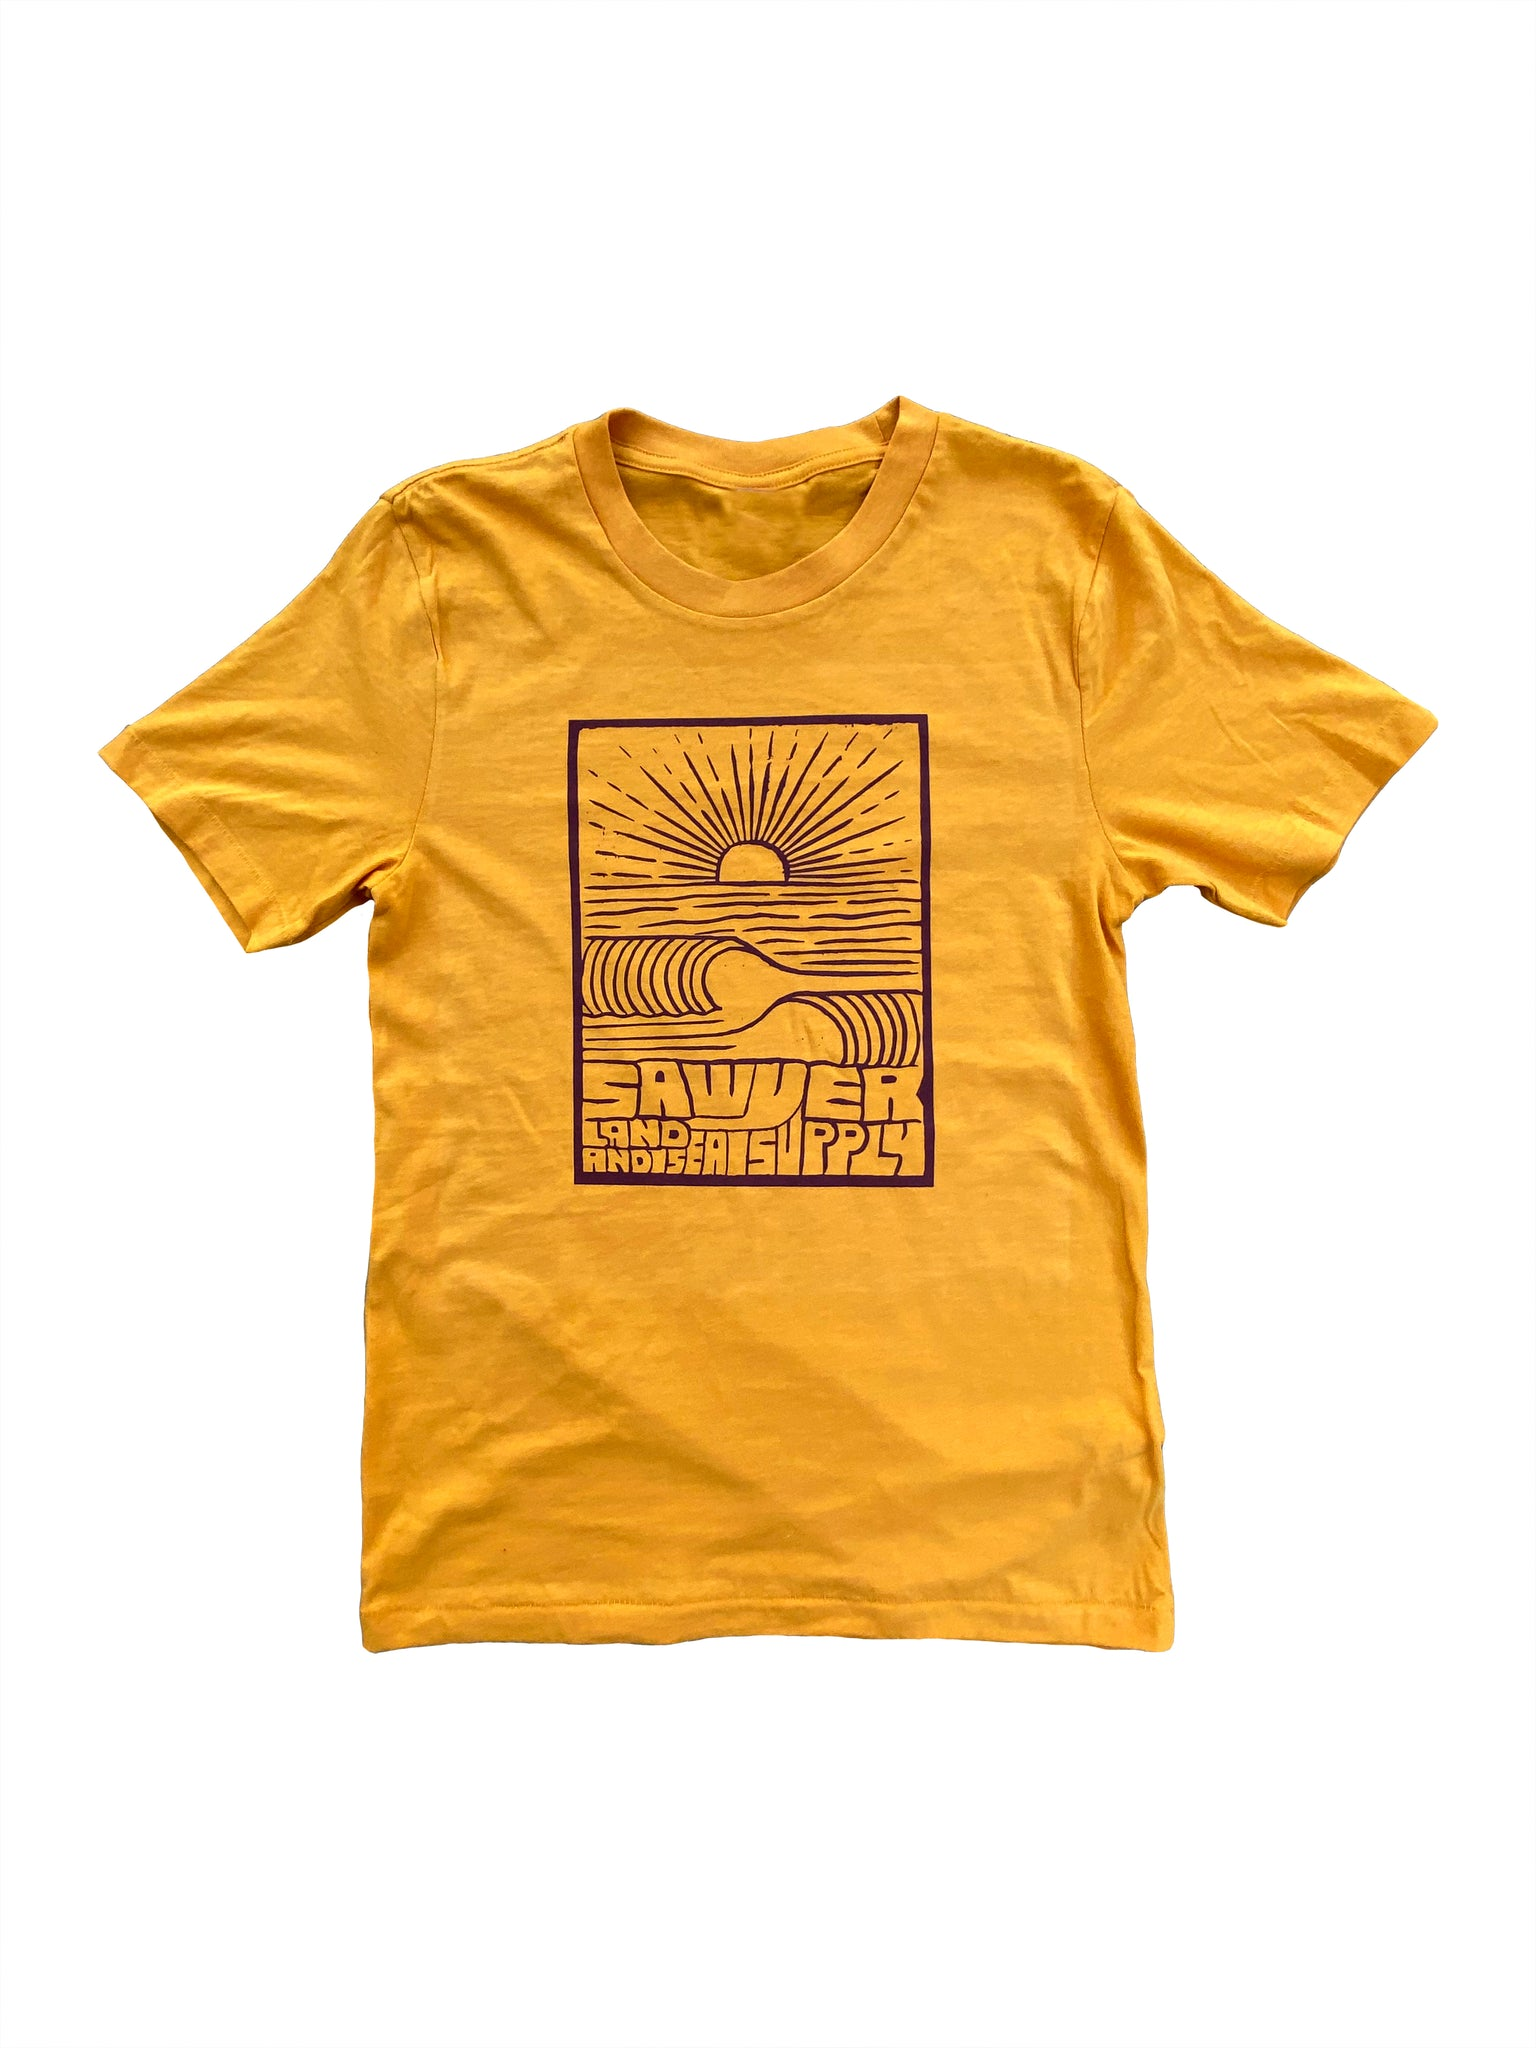 SUN SHINES IN GOLD T